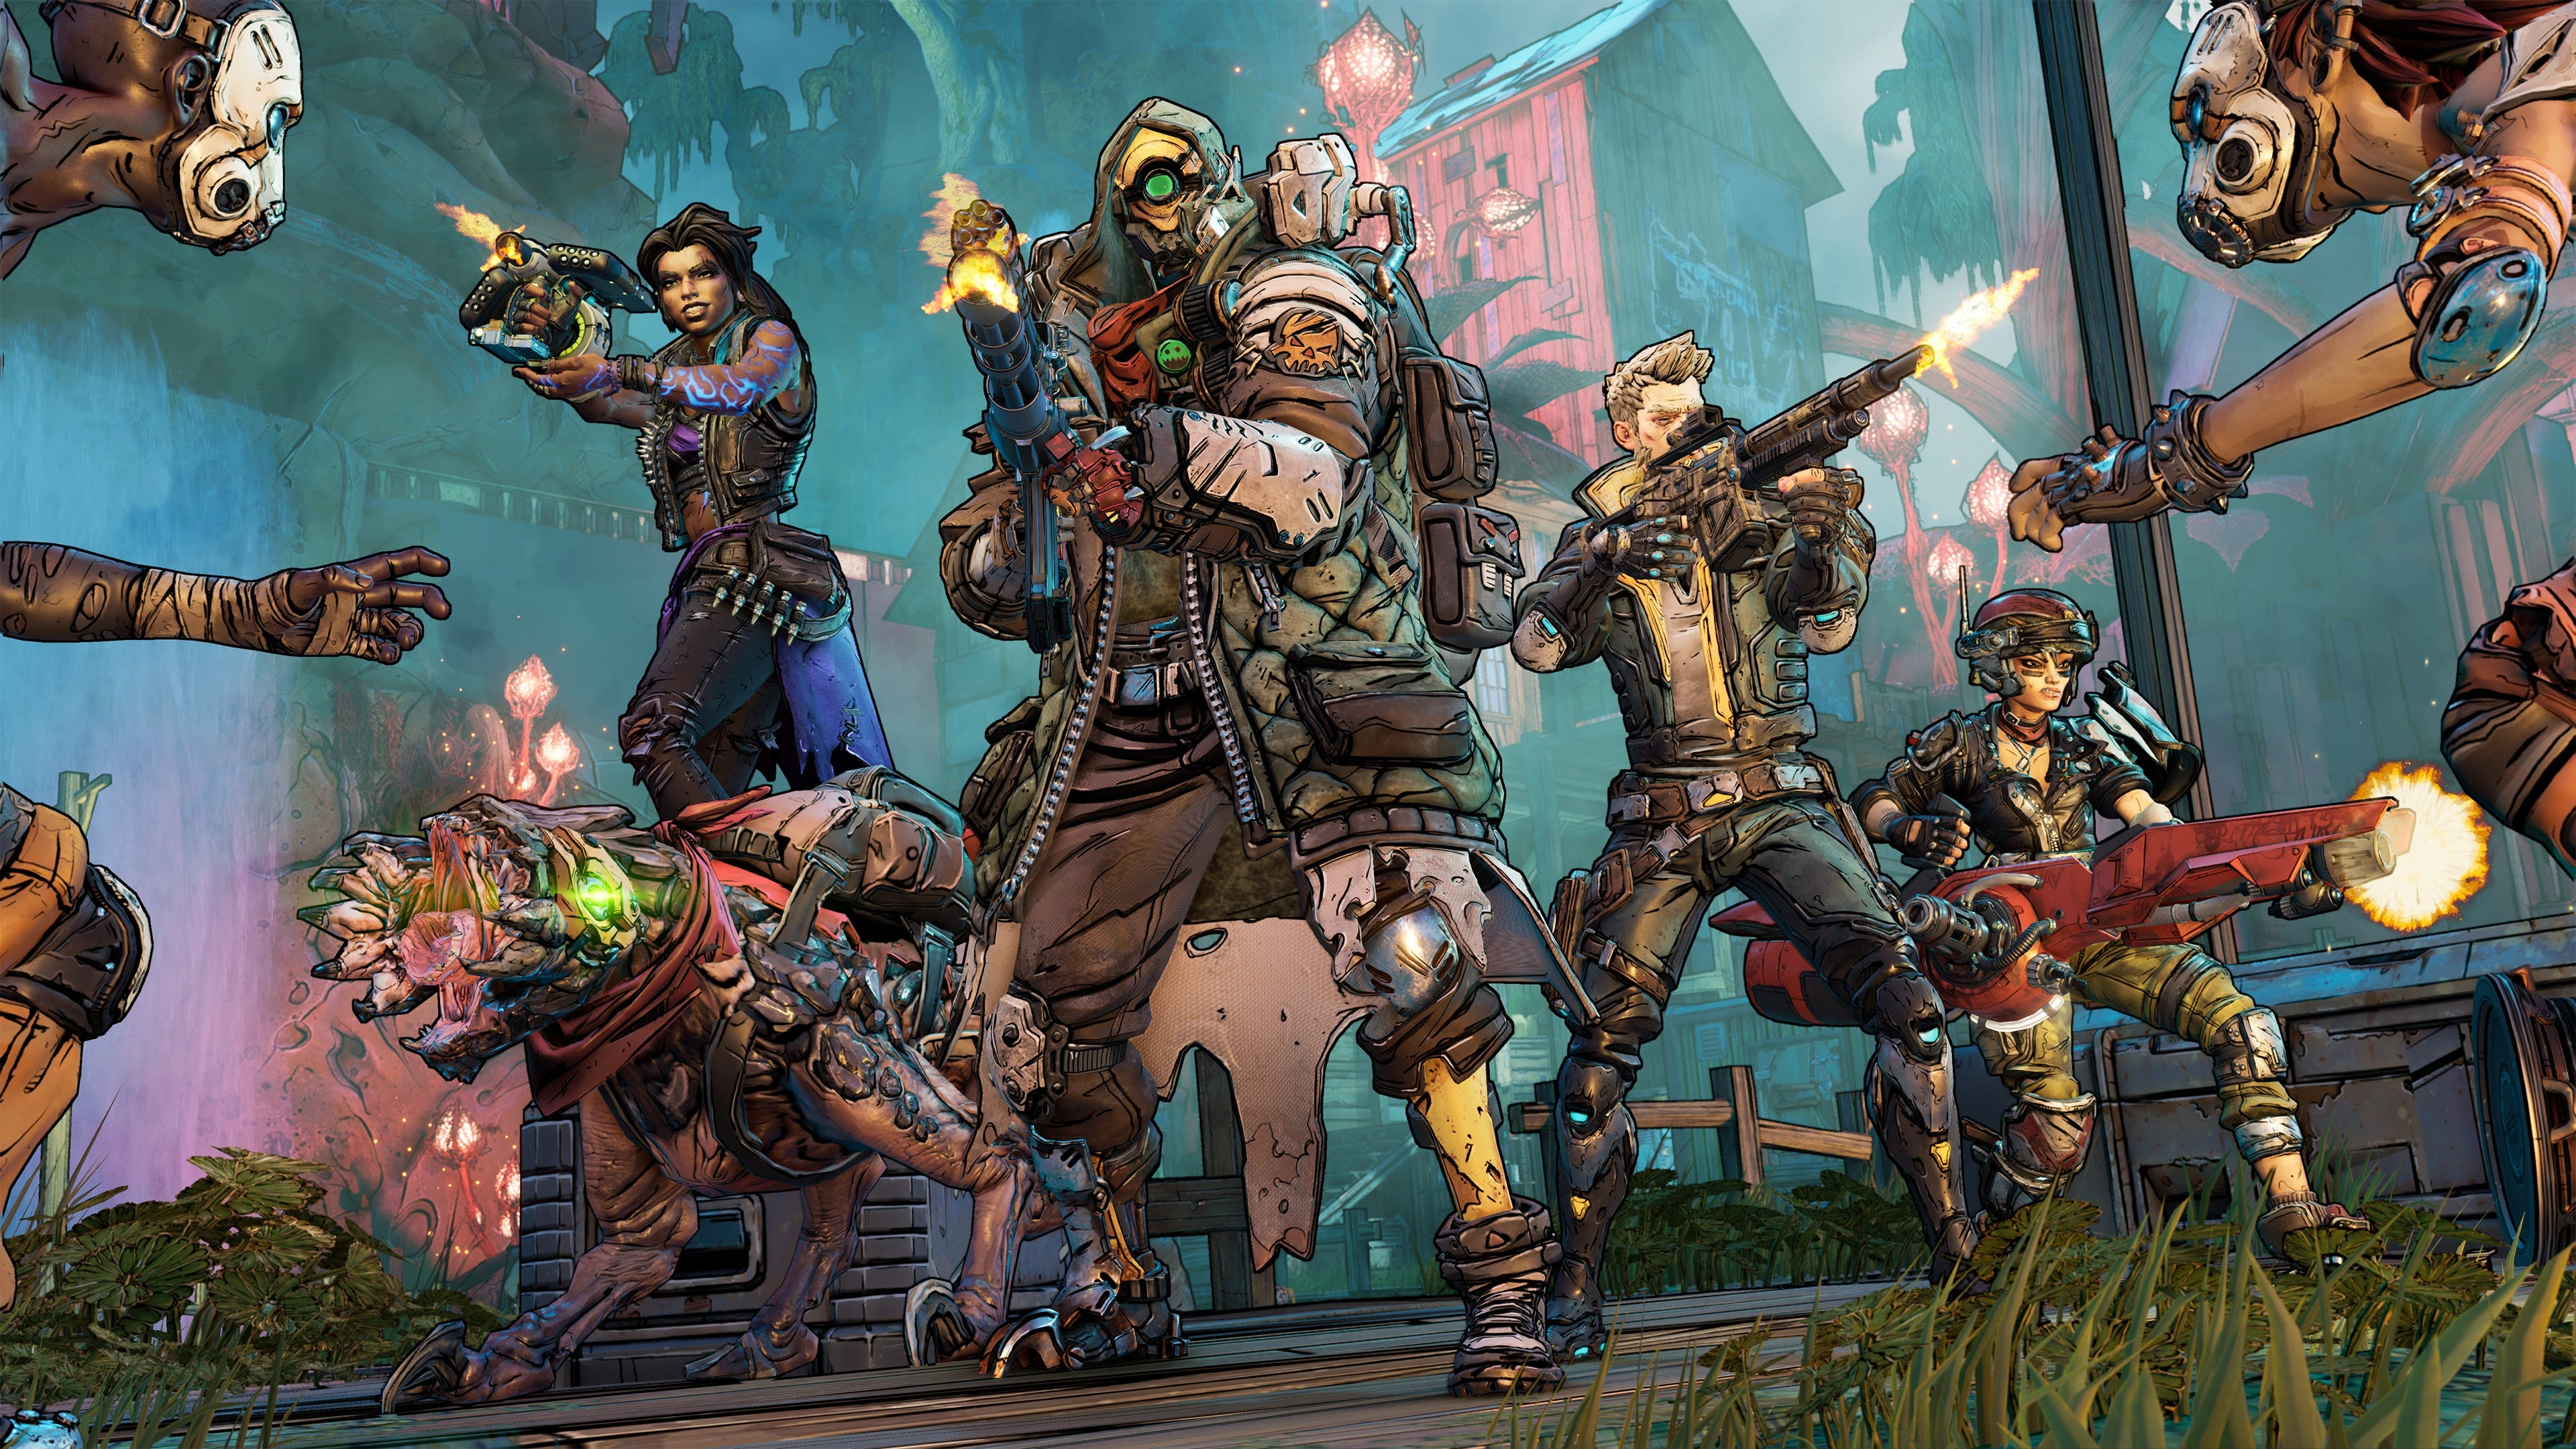 Gearbox says it was 'required' to remove Borderlands 3 cross-play for PlayStation consoles screenshot